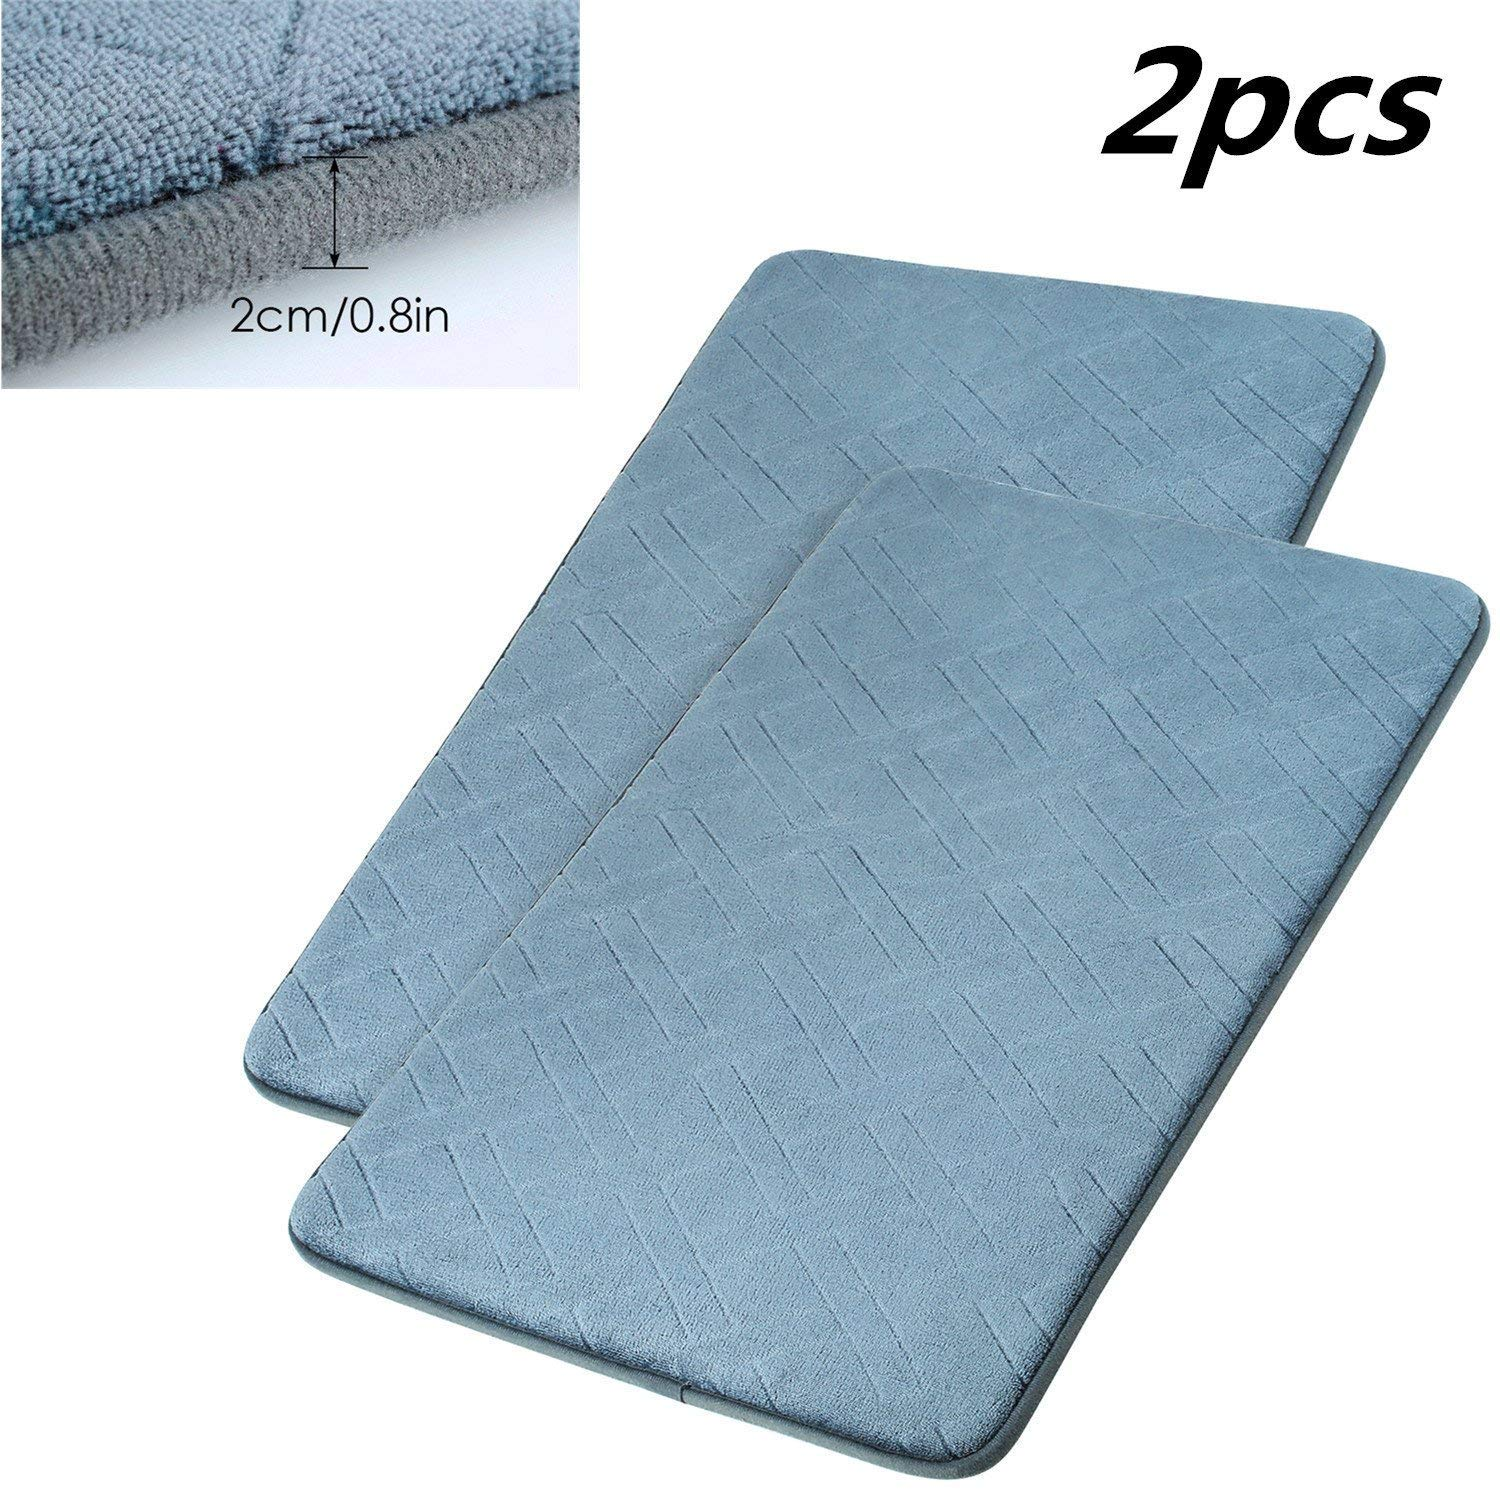 HOMFA 2pcs Bath Mat Non-slip Bathroom Rug Bathroom Mat 50x80cm Machine-washable HF